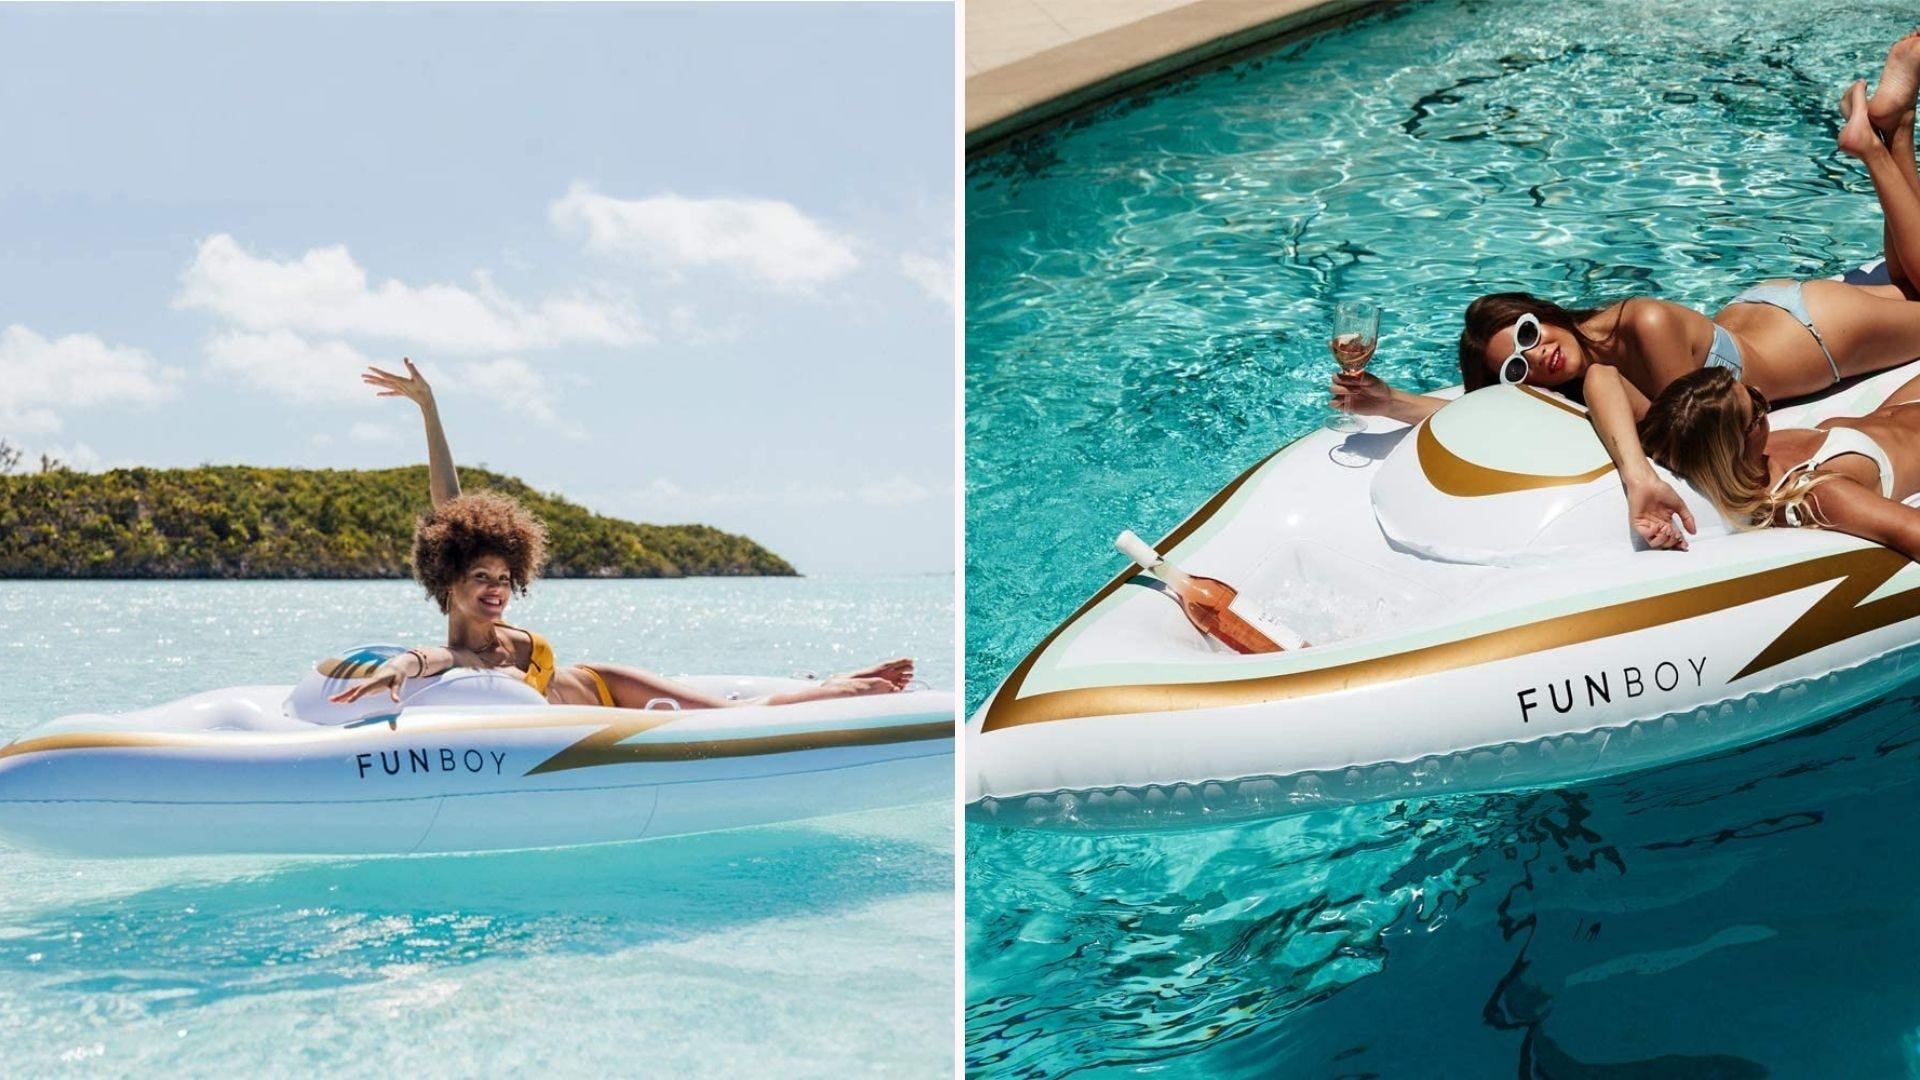 Women lounging in the water on a white yacht-shaped pool float